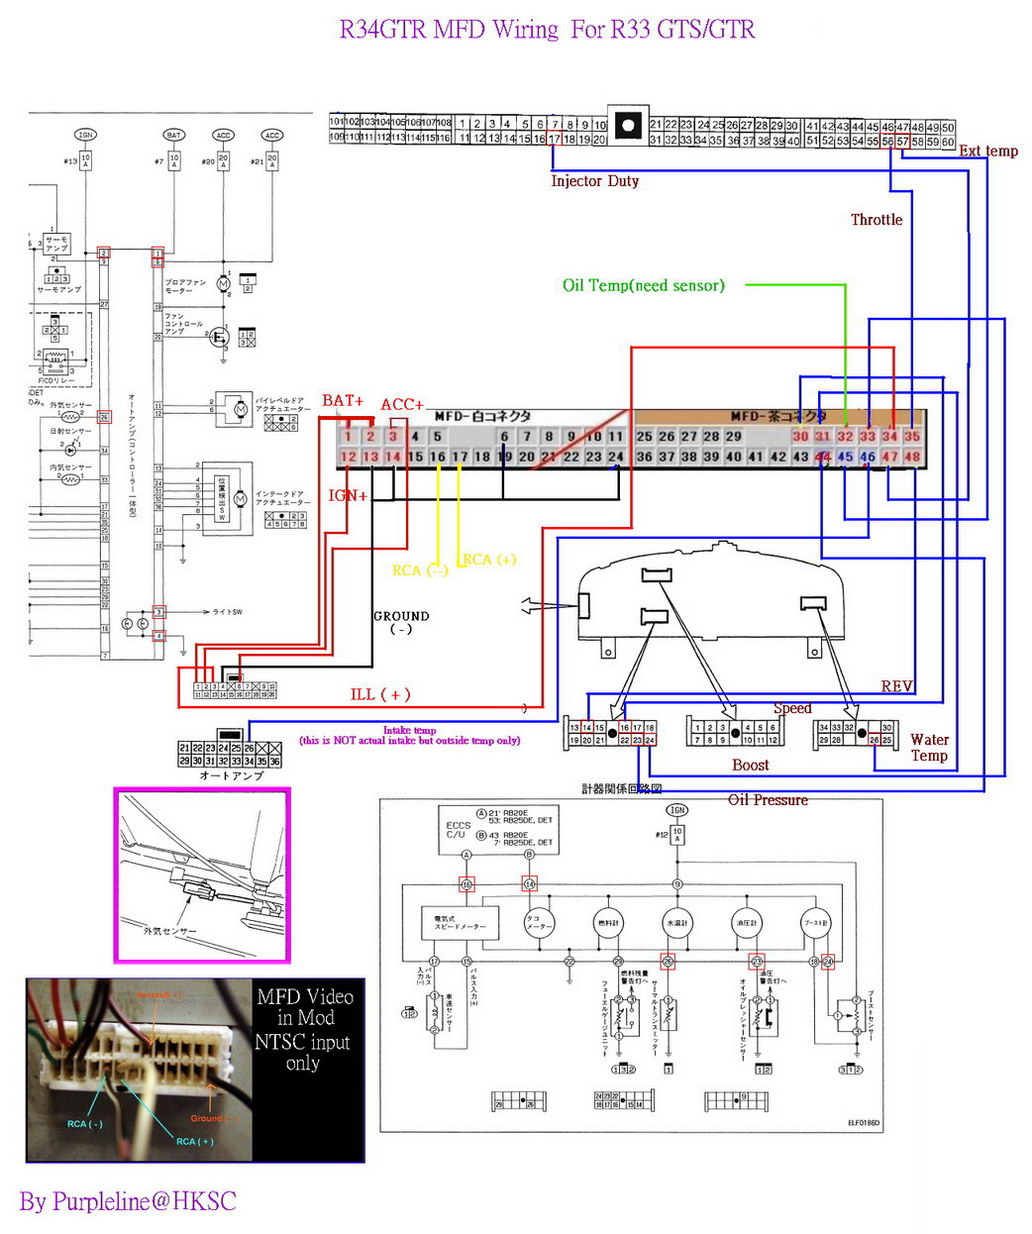 R33 Wiring Diagram Schema Online Home Electrical Diagrams Symbols Portal